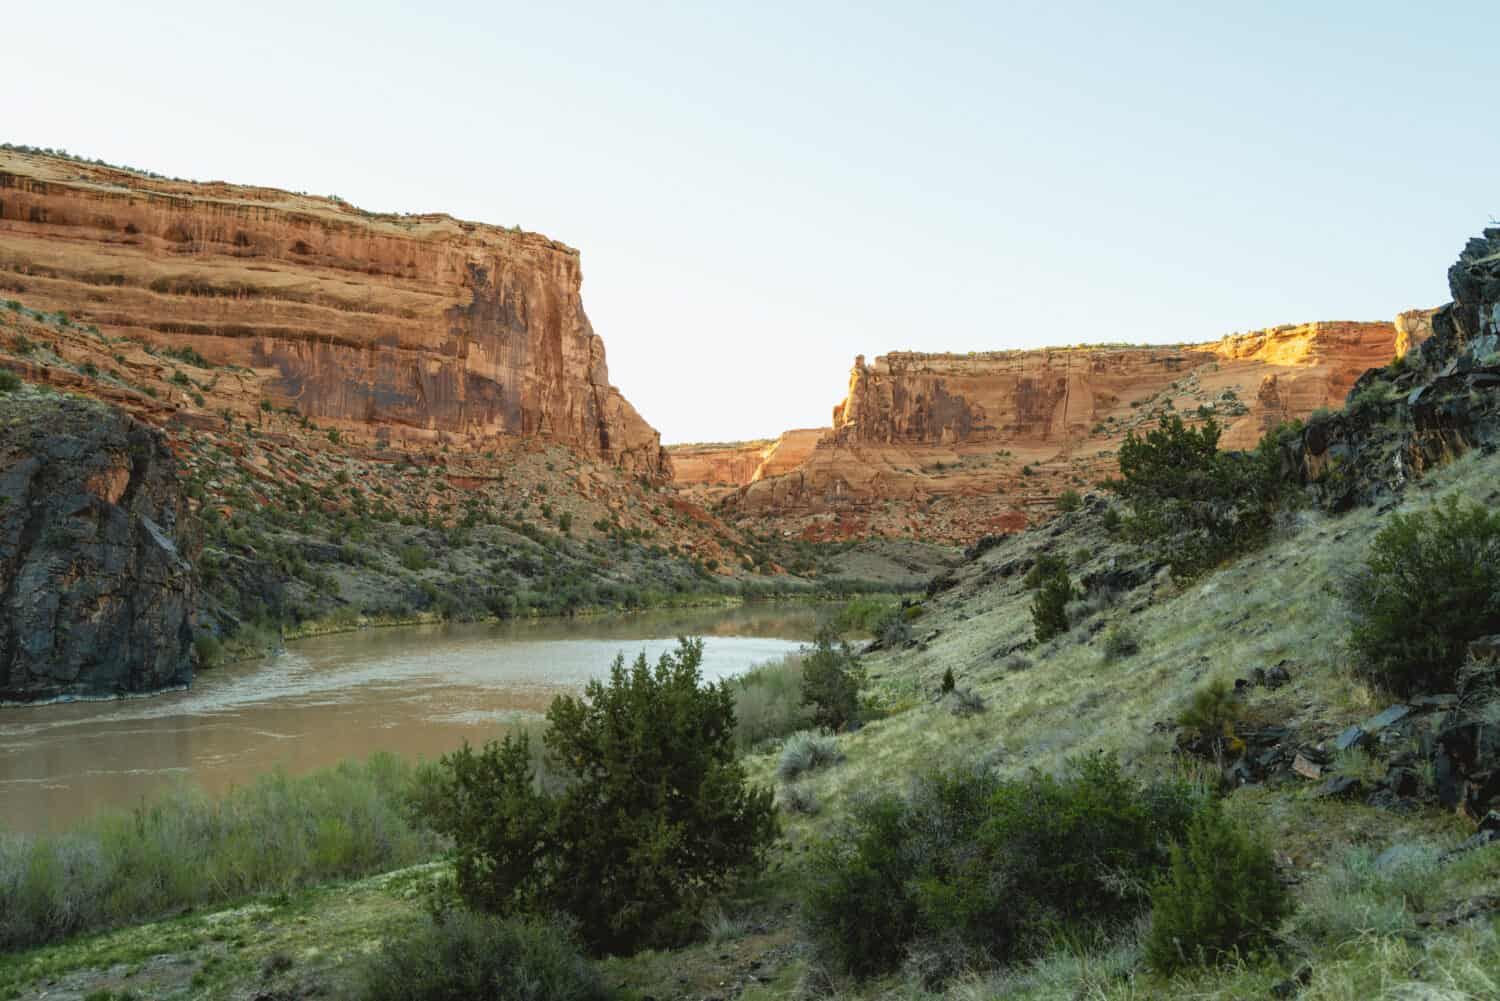 Westerwater Canyon during sunset in Colorado